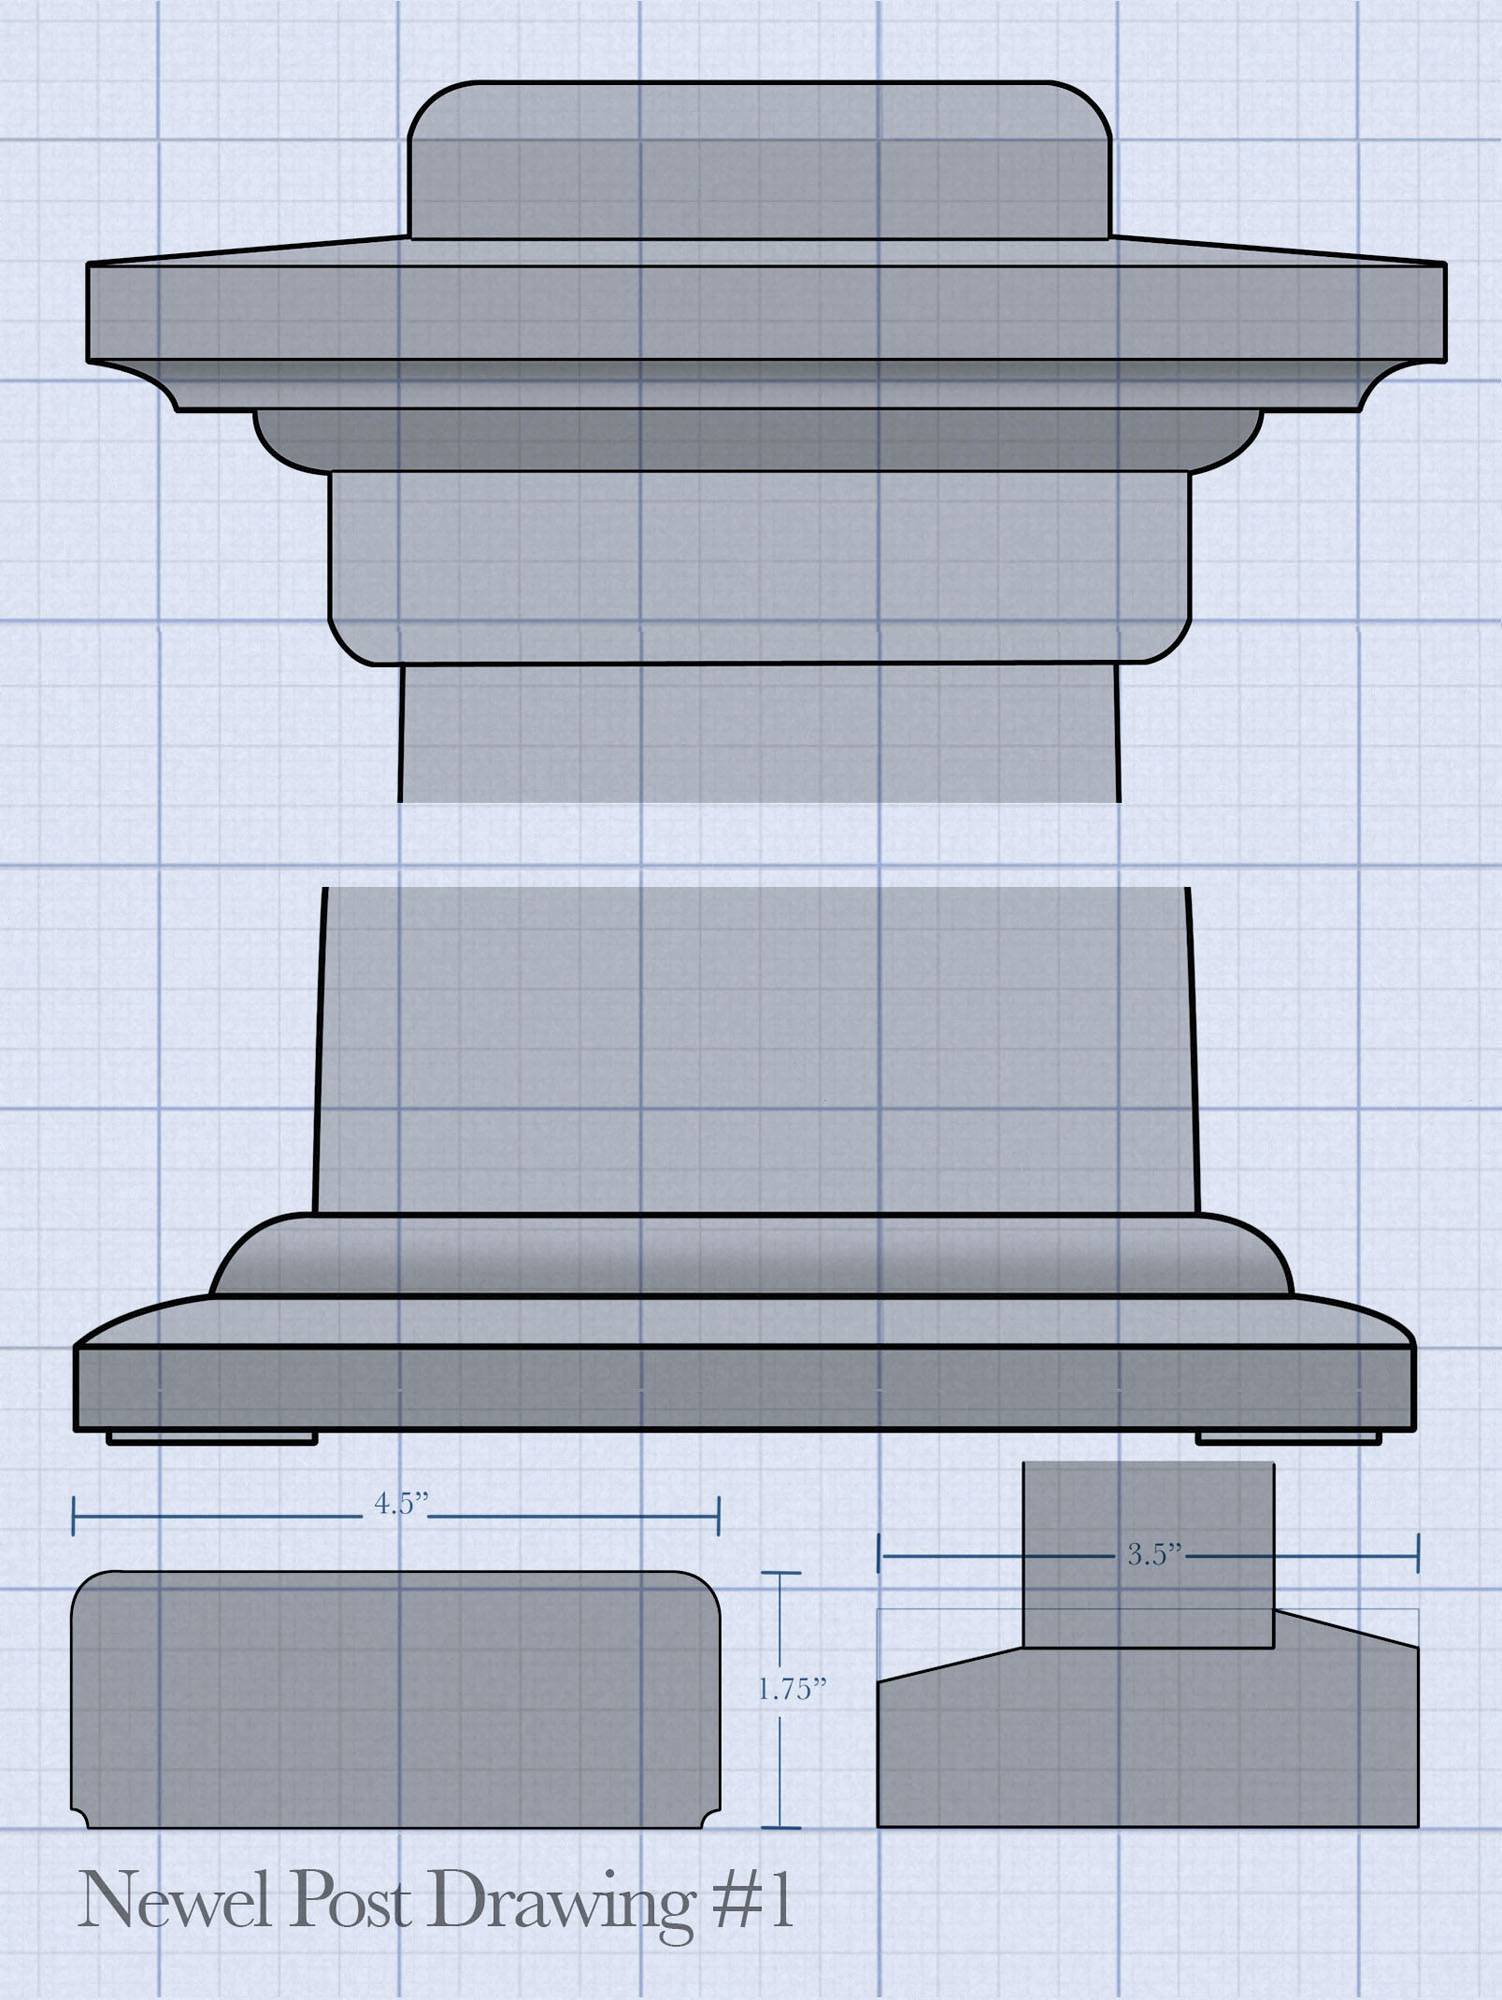 drawing of newel post details